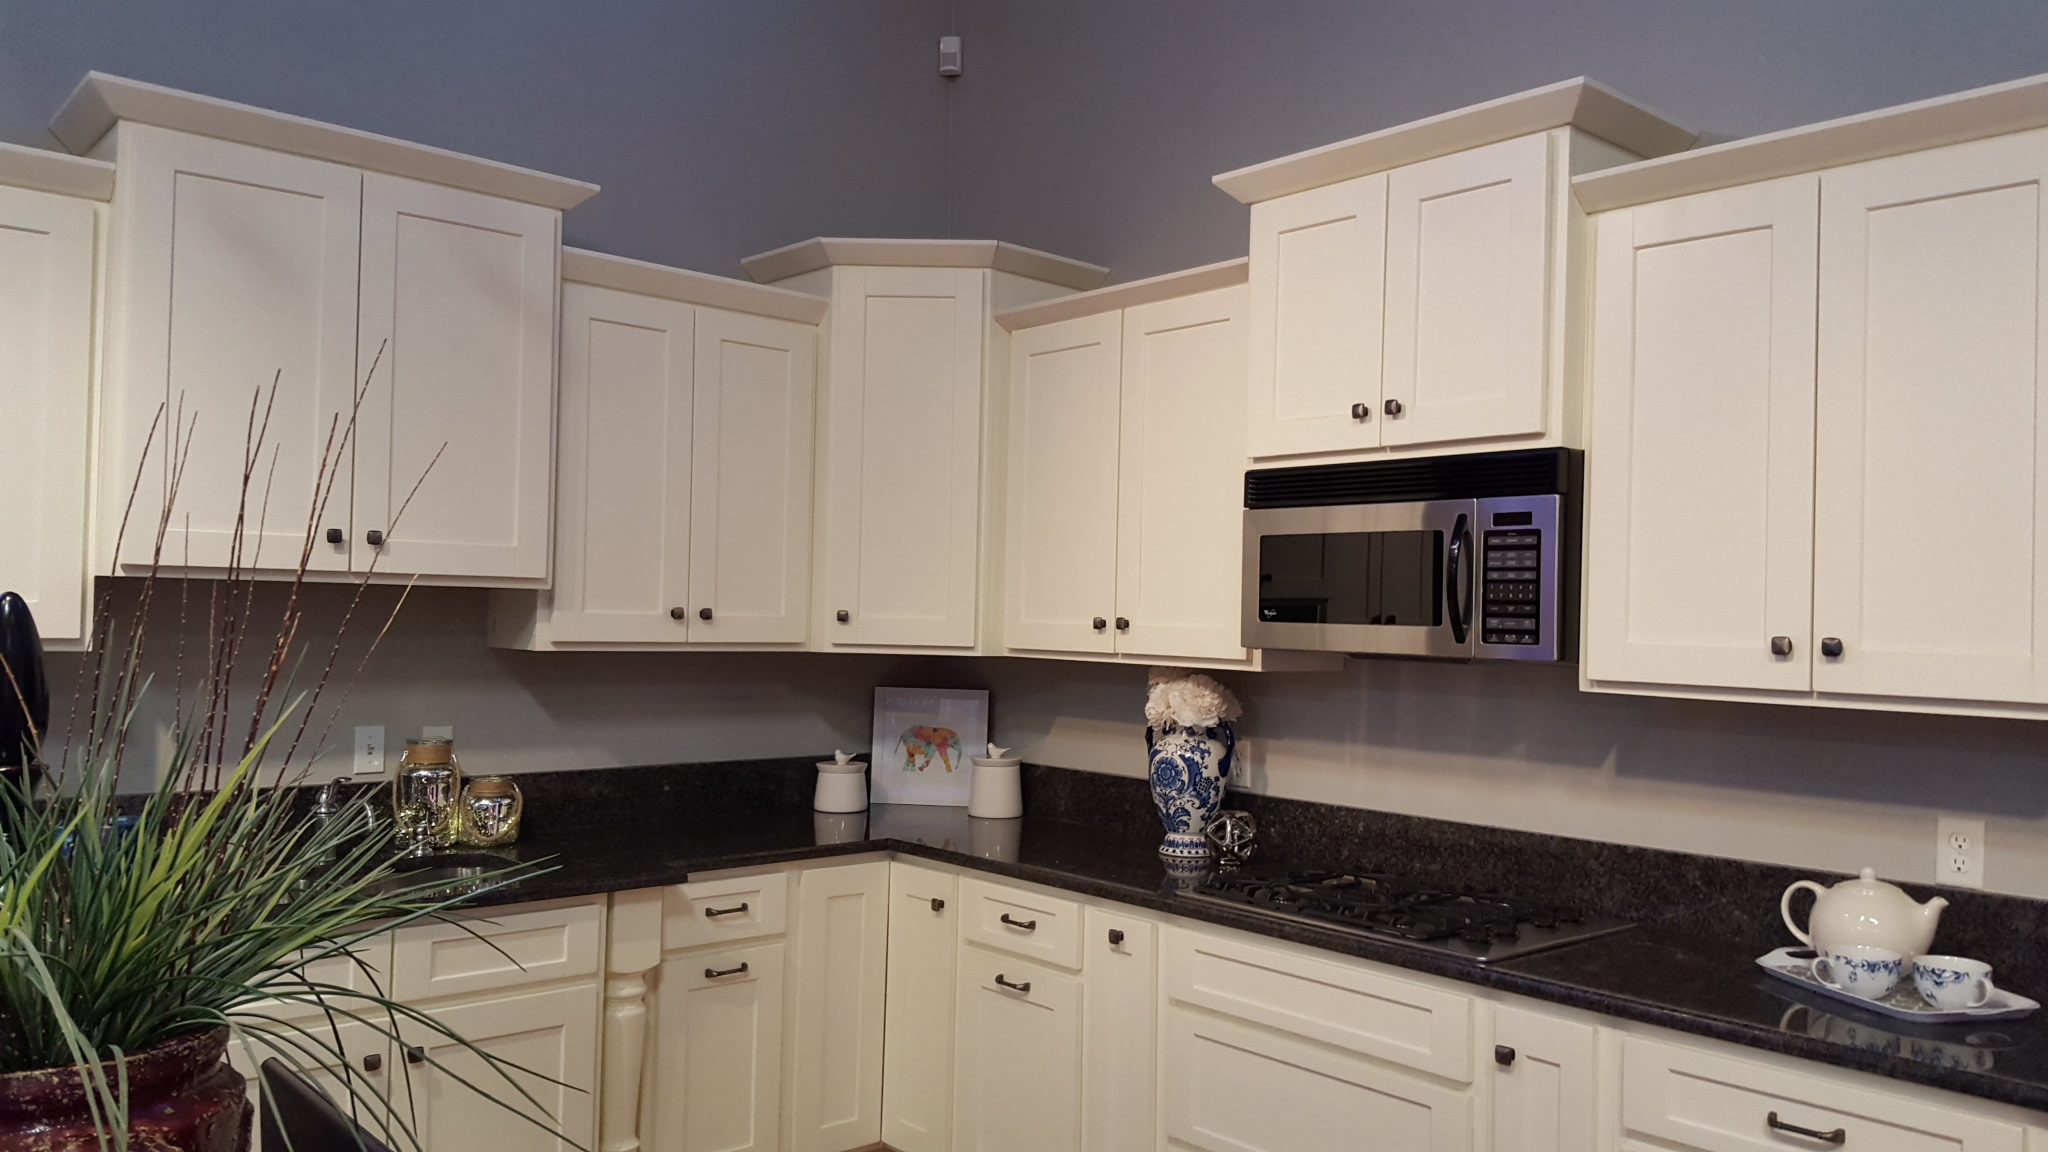 rta kitchen cabinets rta kitchen cabinets Request Sample Request Sample